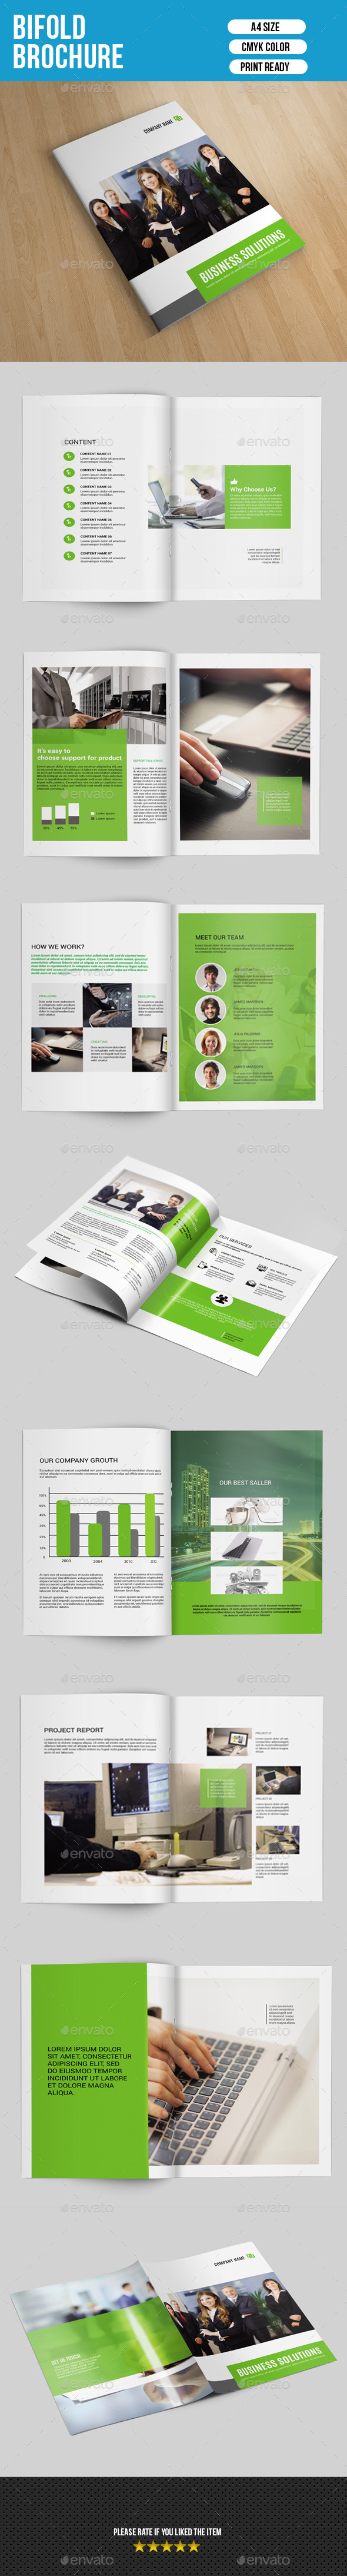 GraphicRiver Corporate Bifold Brochure-V167 9656500